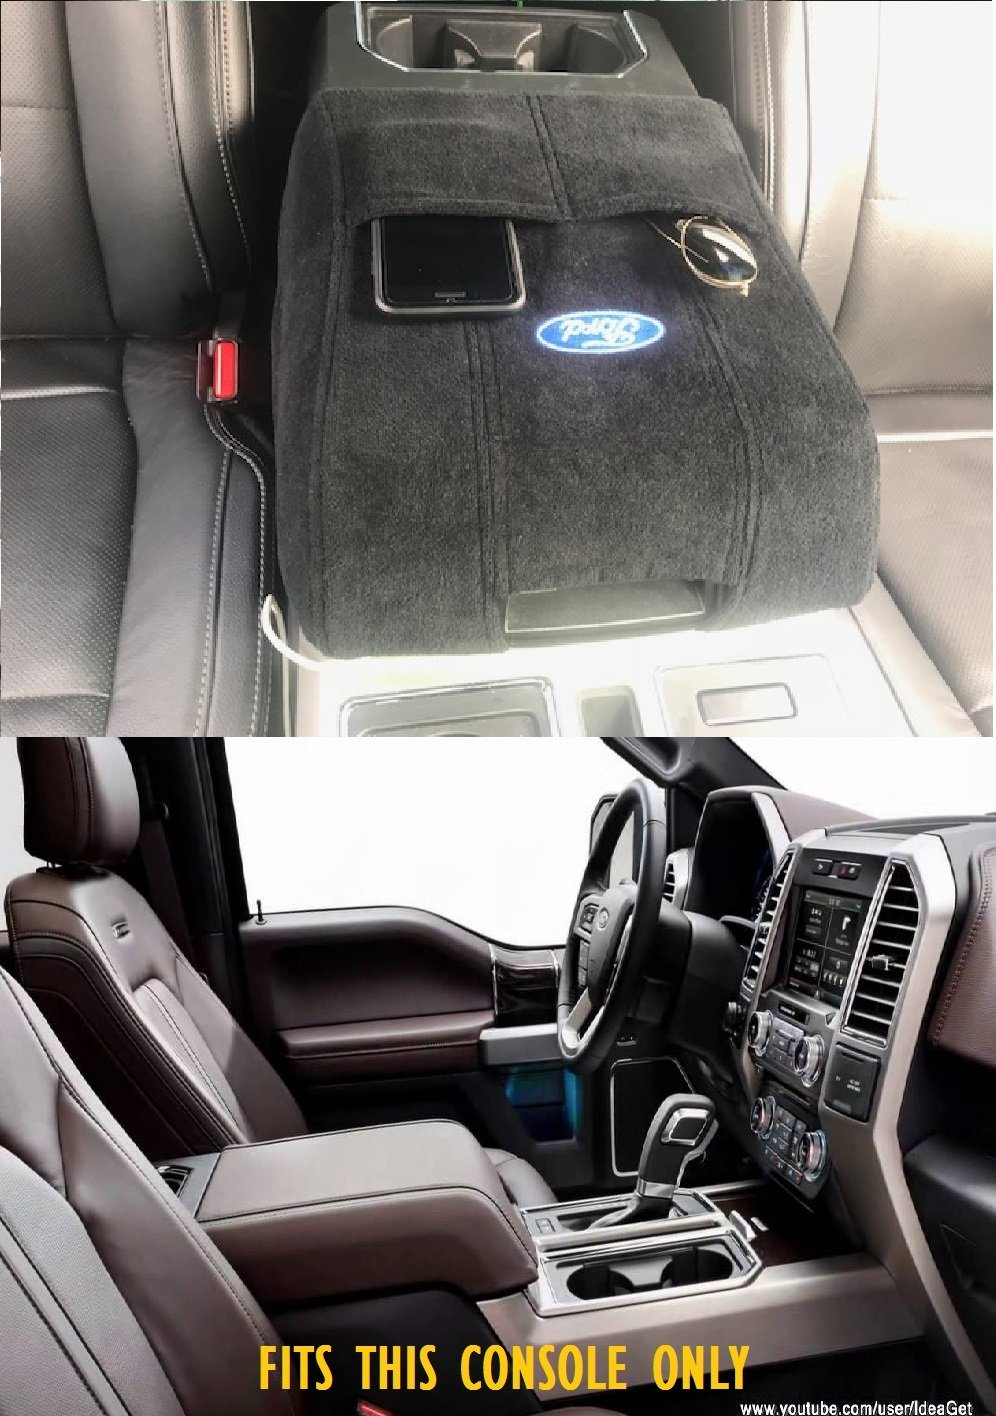 2004 - 2017 Ford F150 F250 F350 F450 CENTER CONSOLE COVER WTH FORD LOGO BRAND NEW IN PACKAGE Konsole Armour